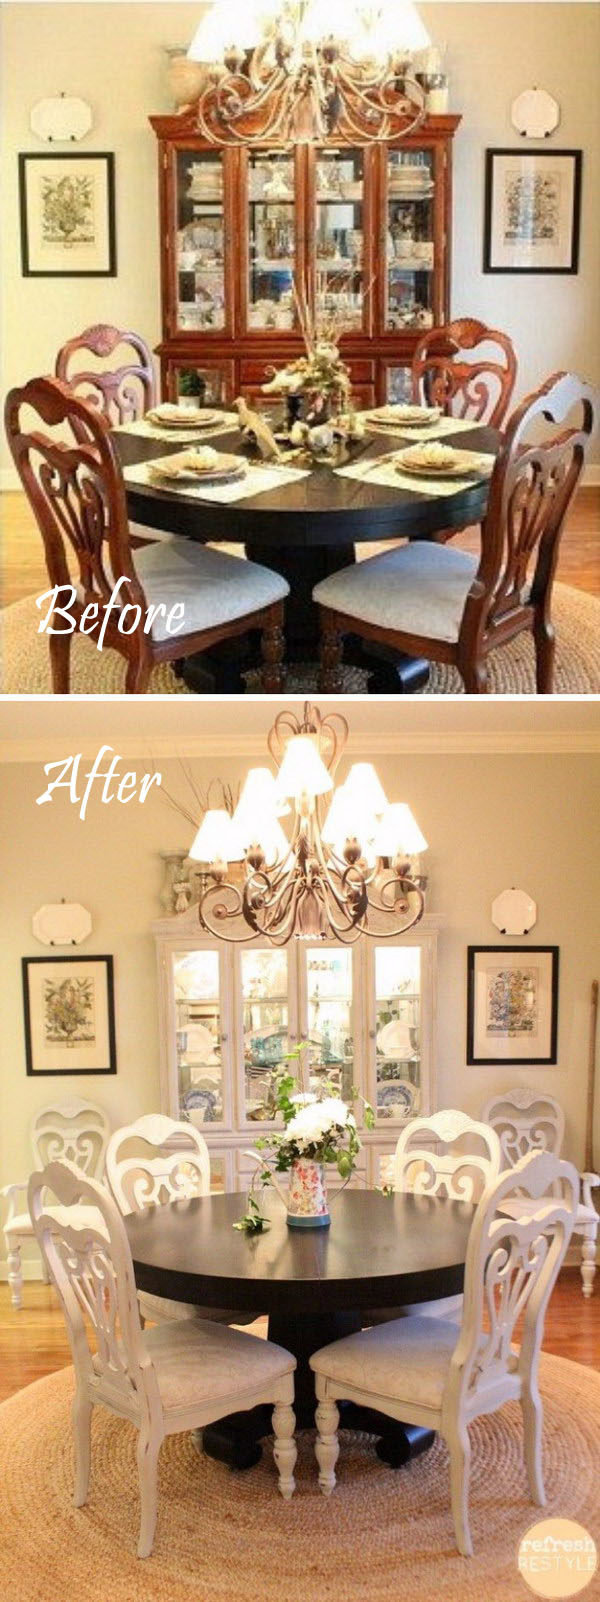 35-36-dining-room-makeover-ideas-tutorials